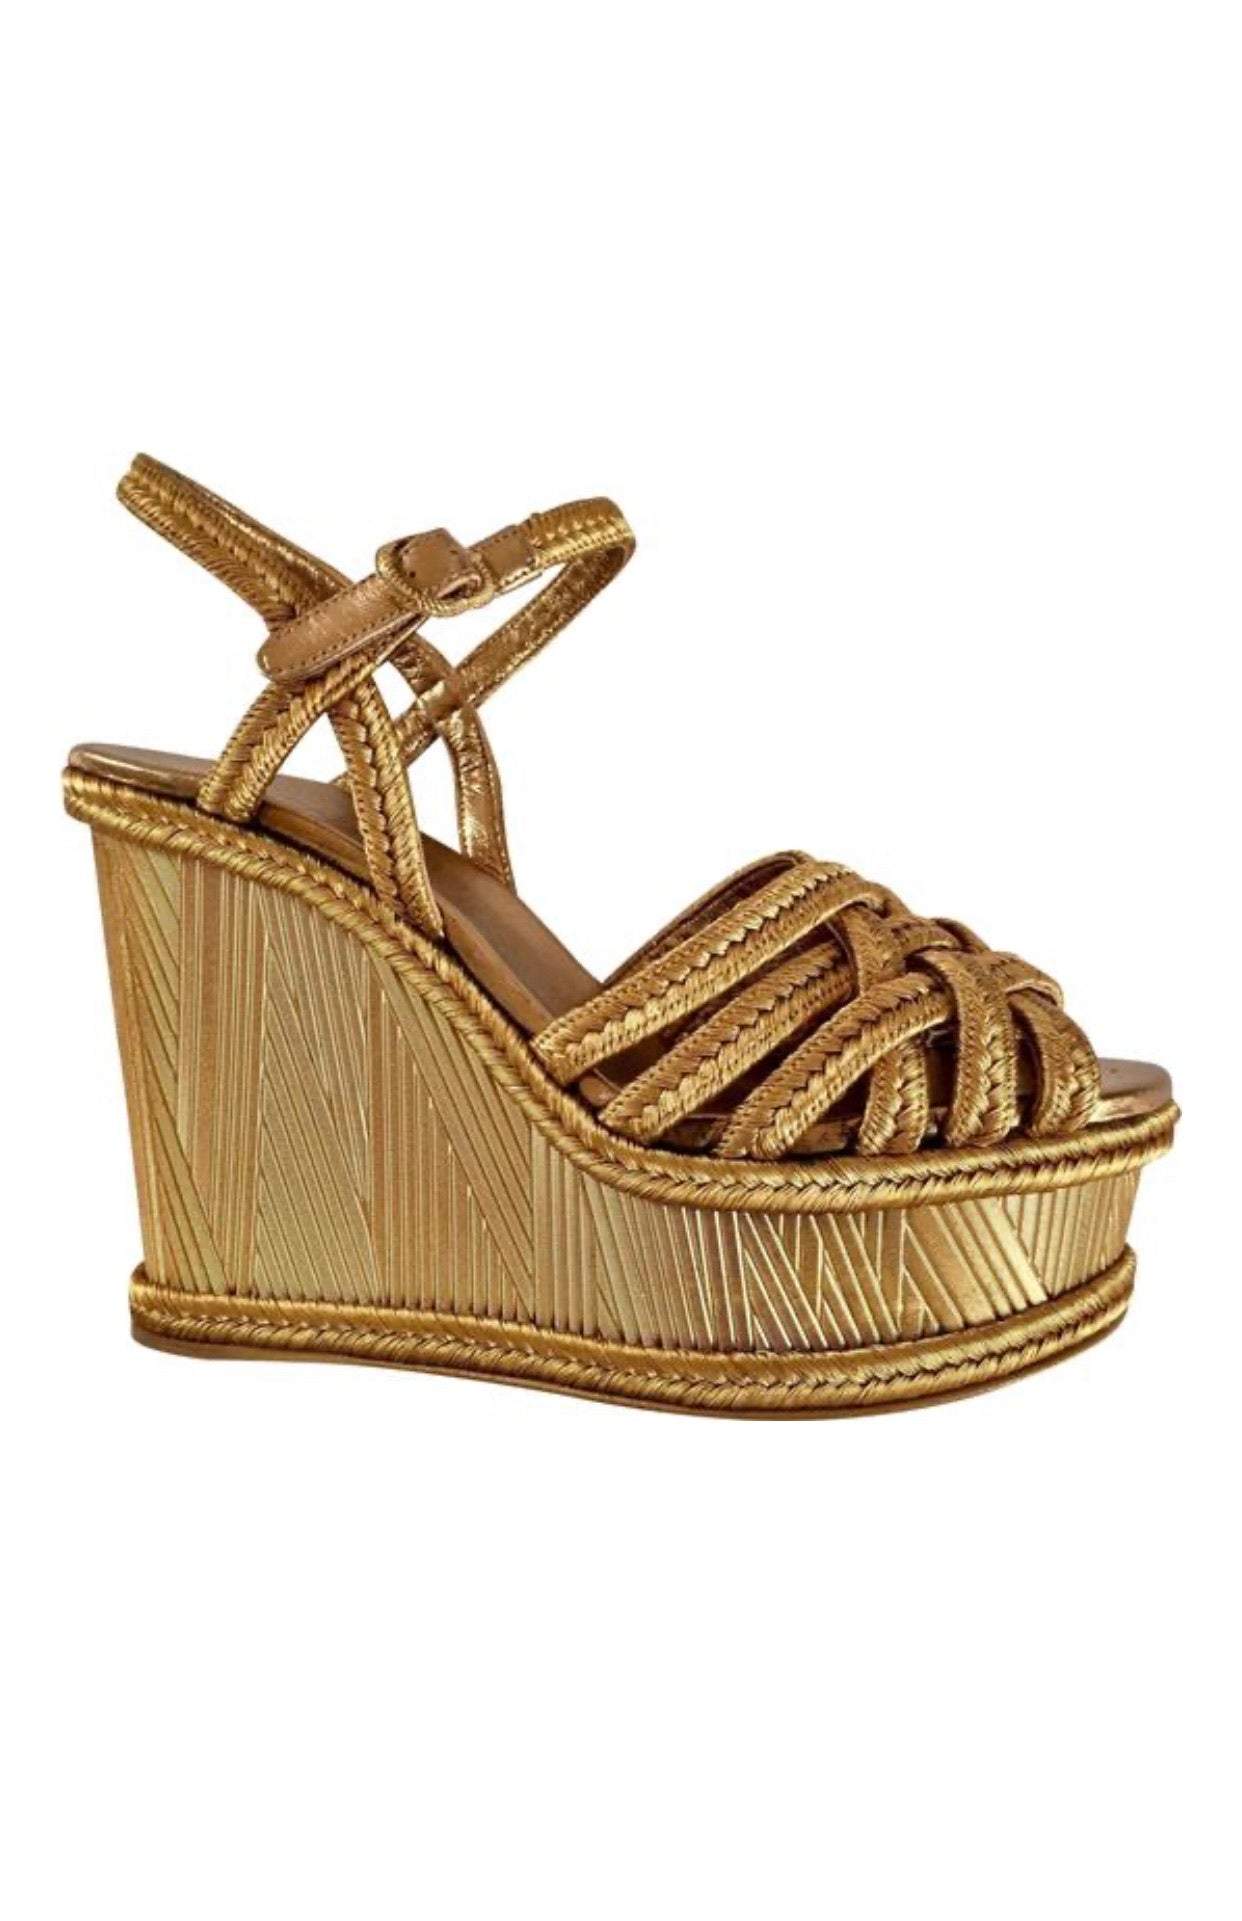 Chanel gold woven wedge sandal heel size 7